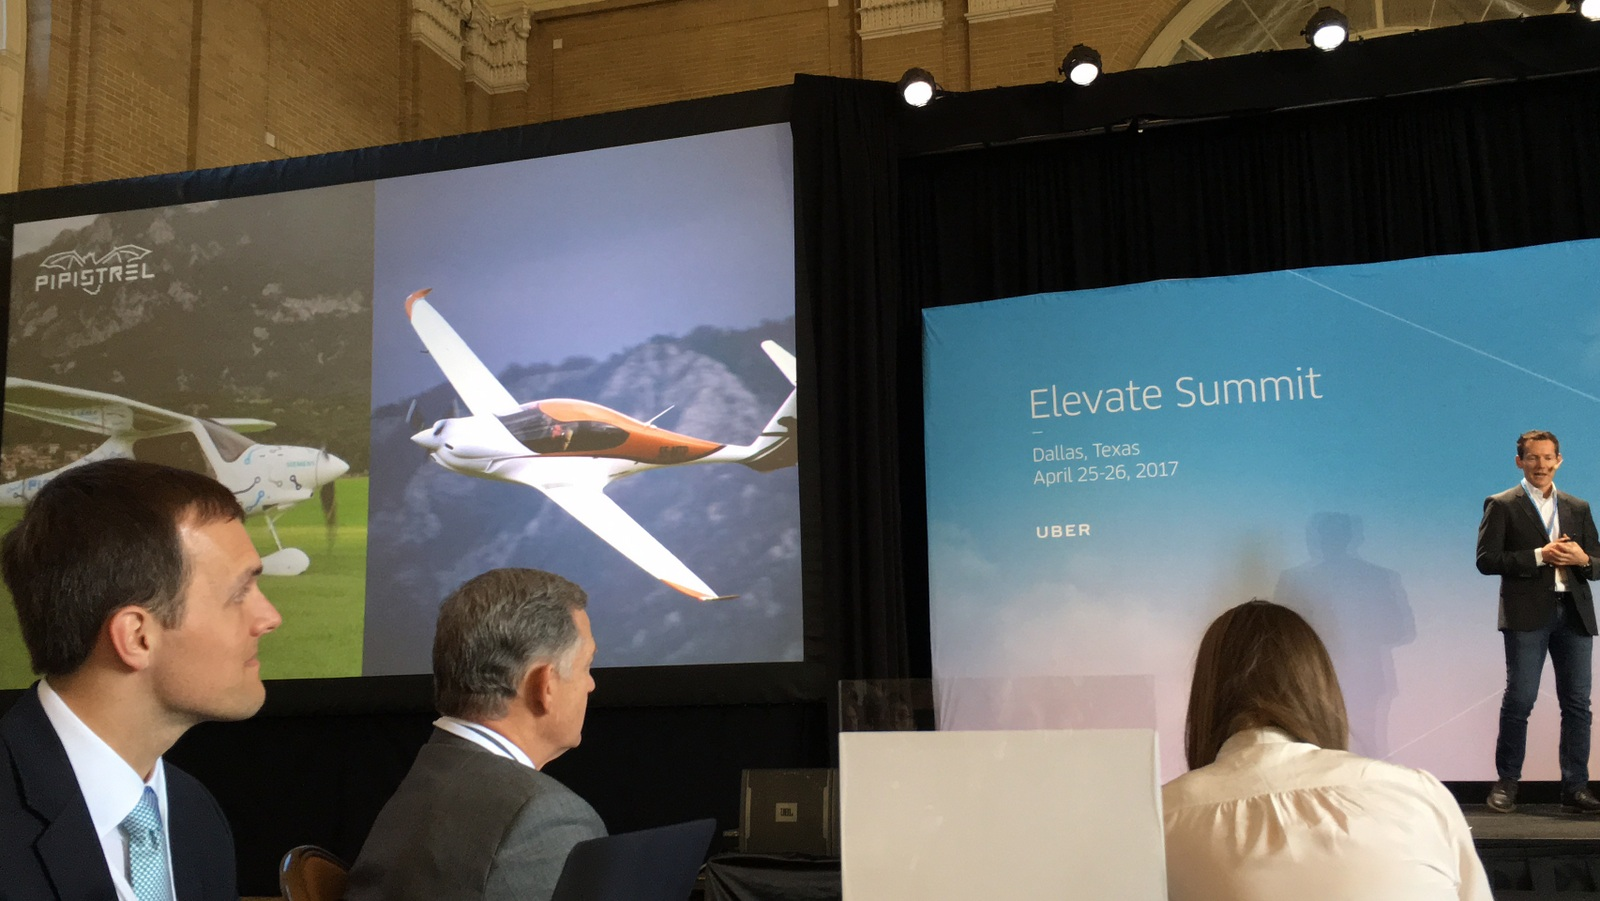 ●	Uber's and Pipistrel's joint goal is a flight demonstration by 2020